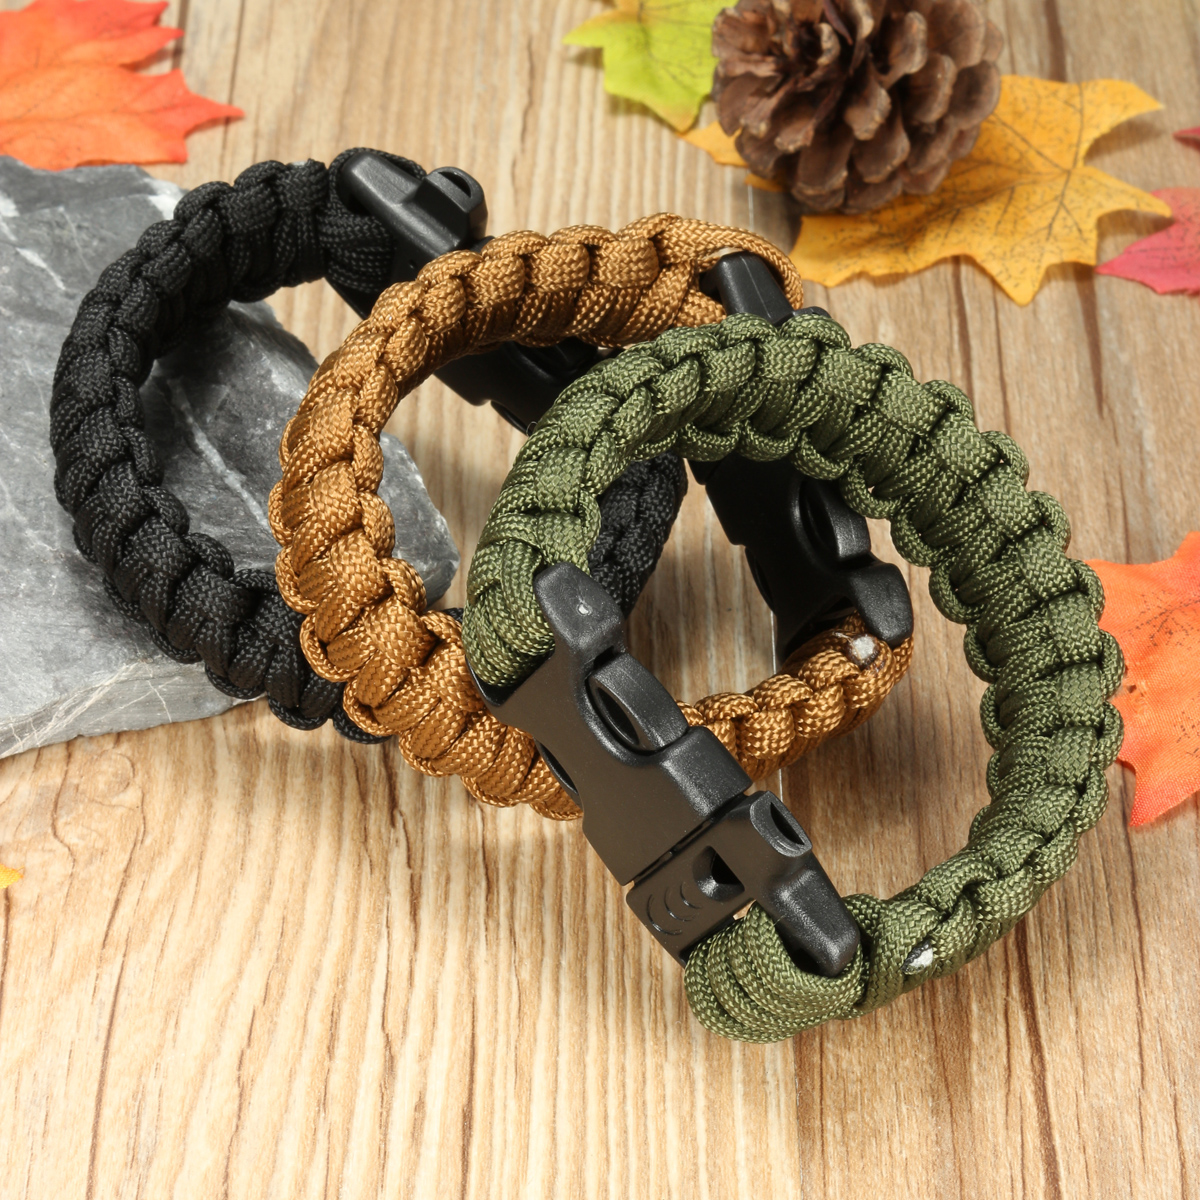 Paracord Survival Weave Bracelet Paracord Survival Bracelet Emergency EDC 7 Cores Bracelet